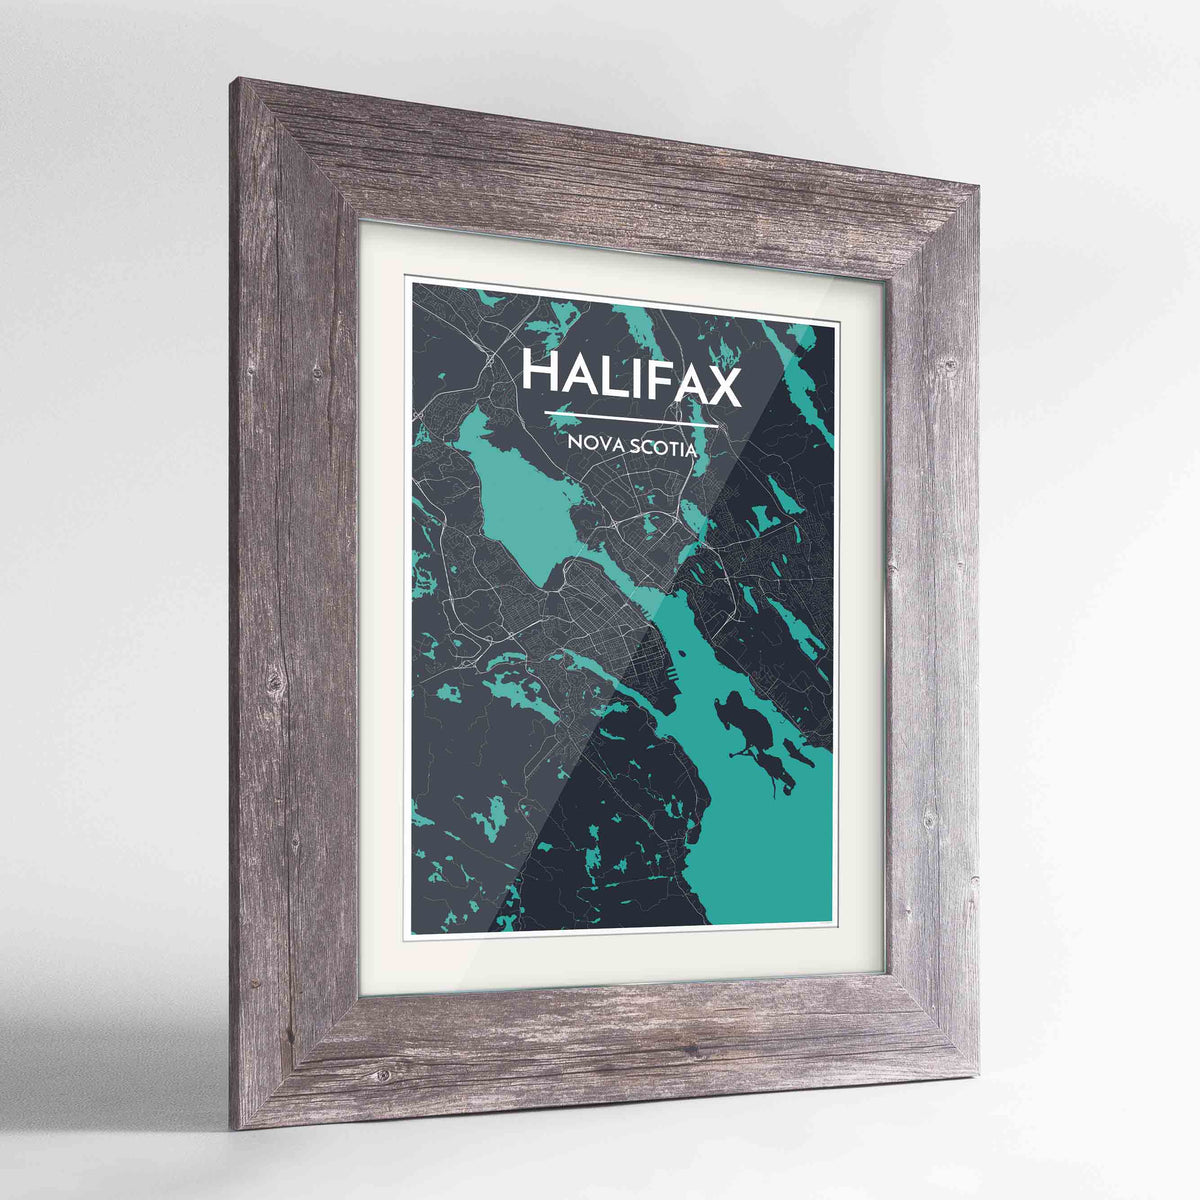 "Framed Halifax City Map 24x36"" Western Grey frame Point Two Design Group"